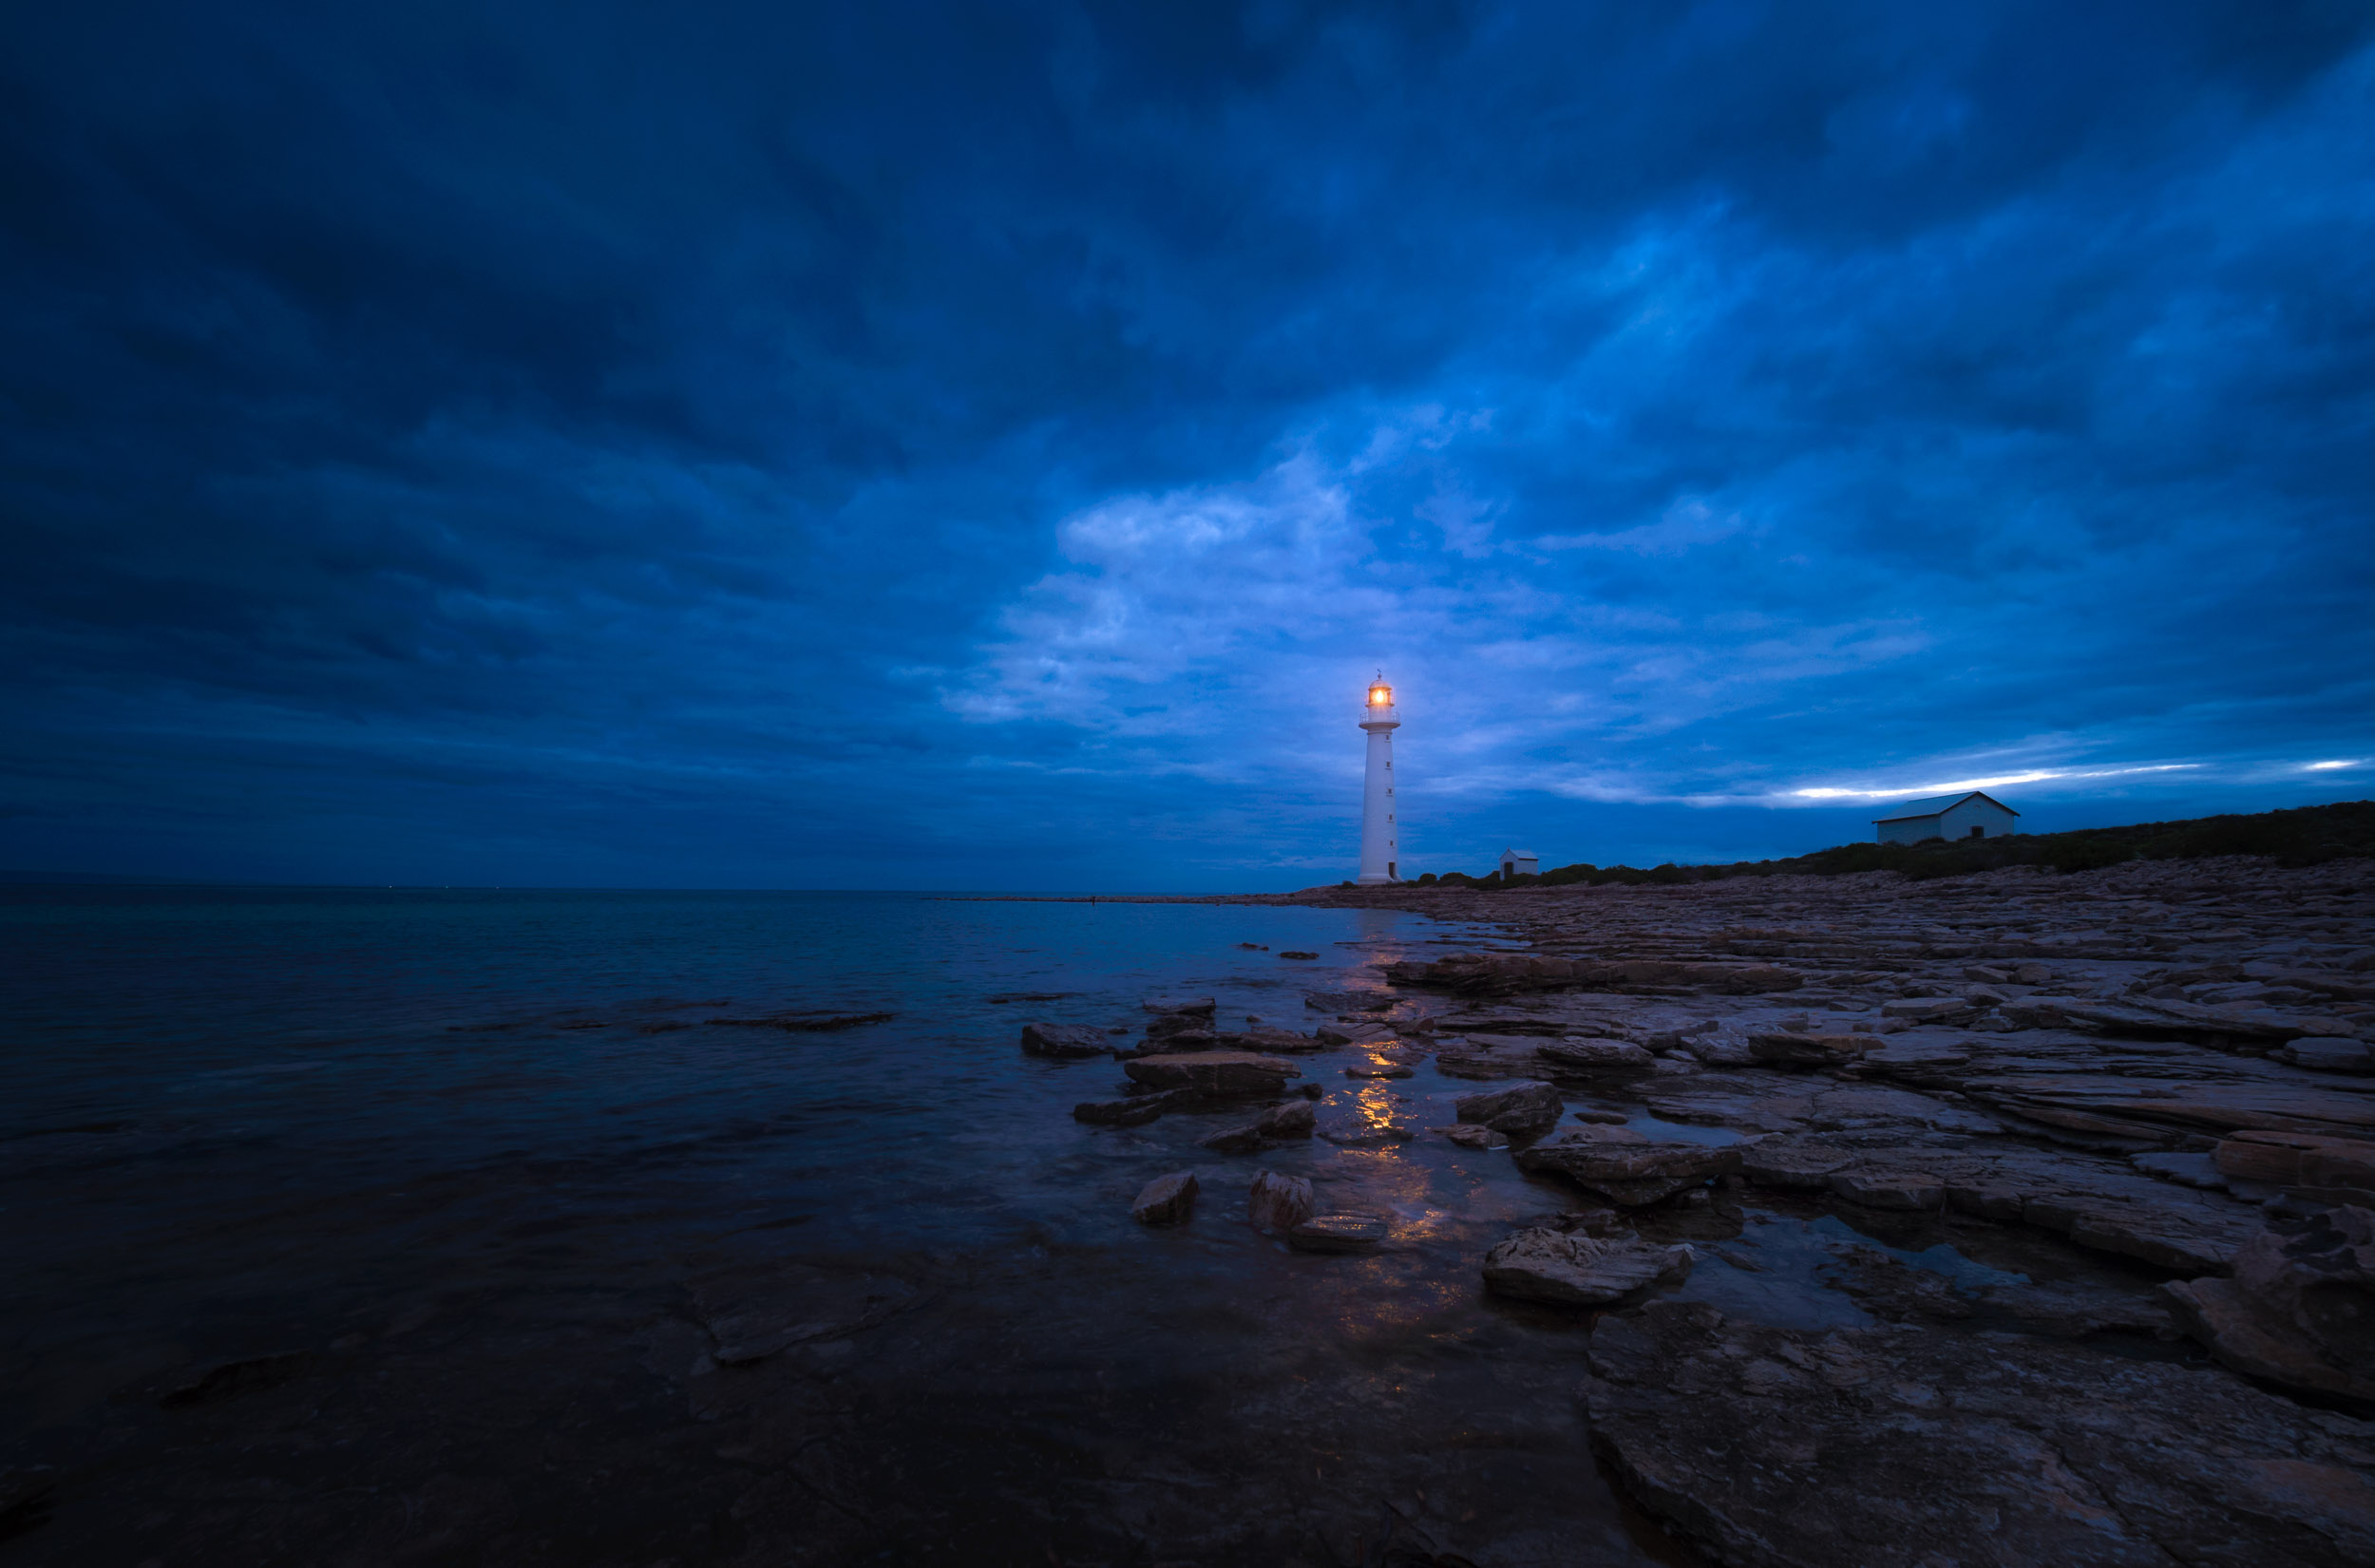 Blue hour @ Point Lowly